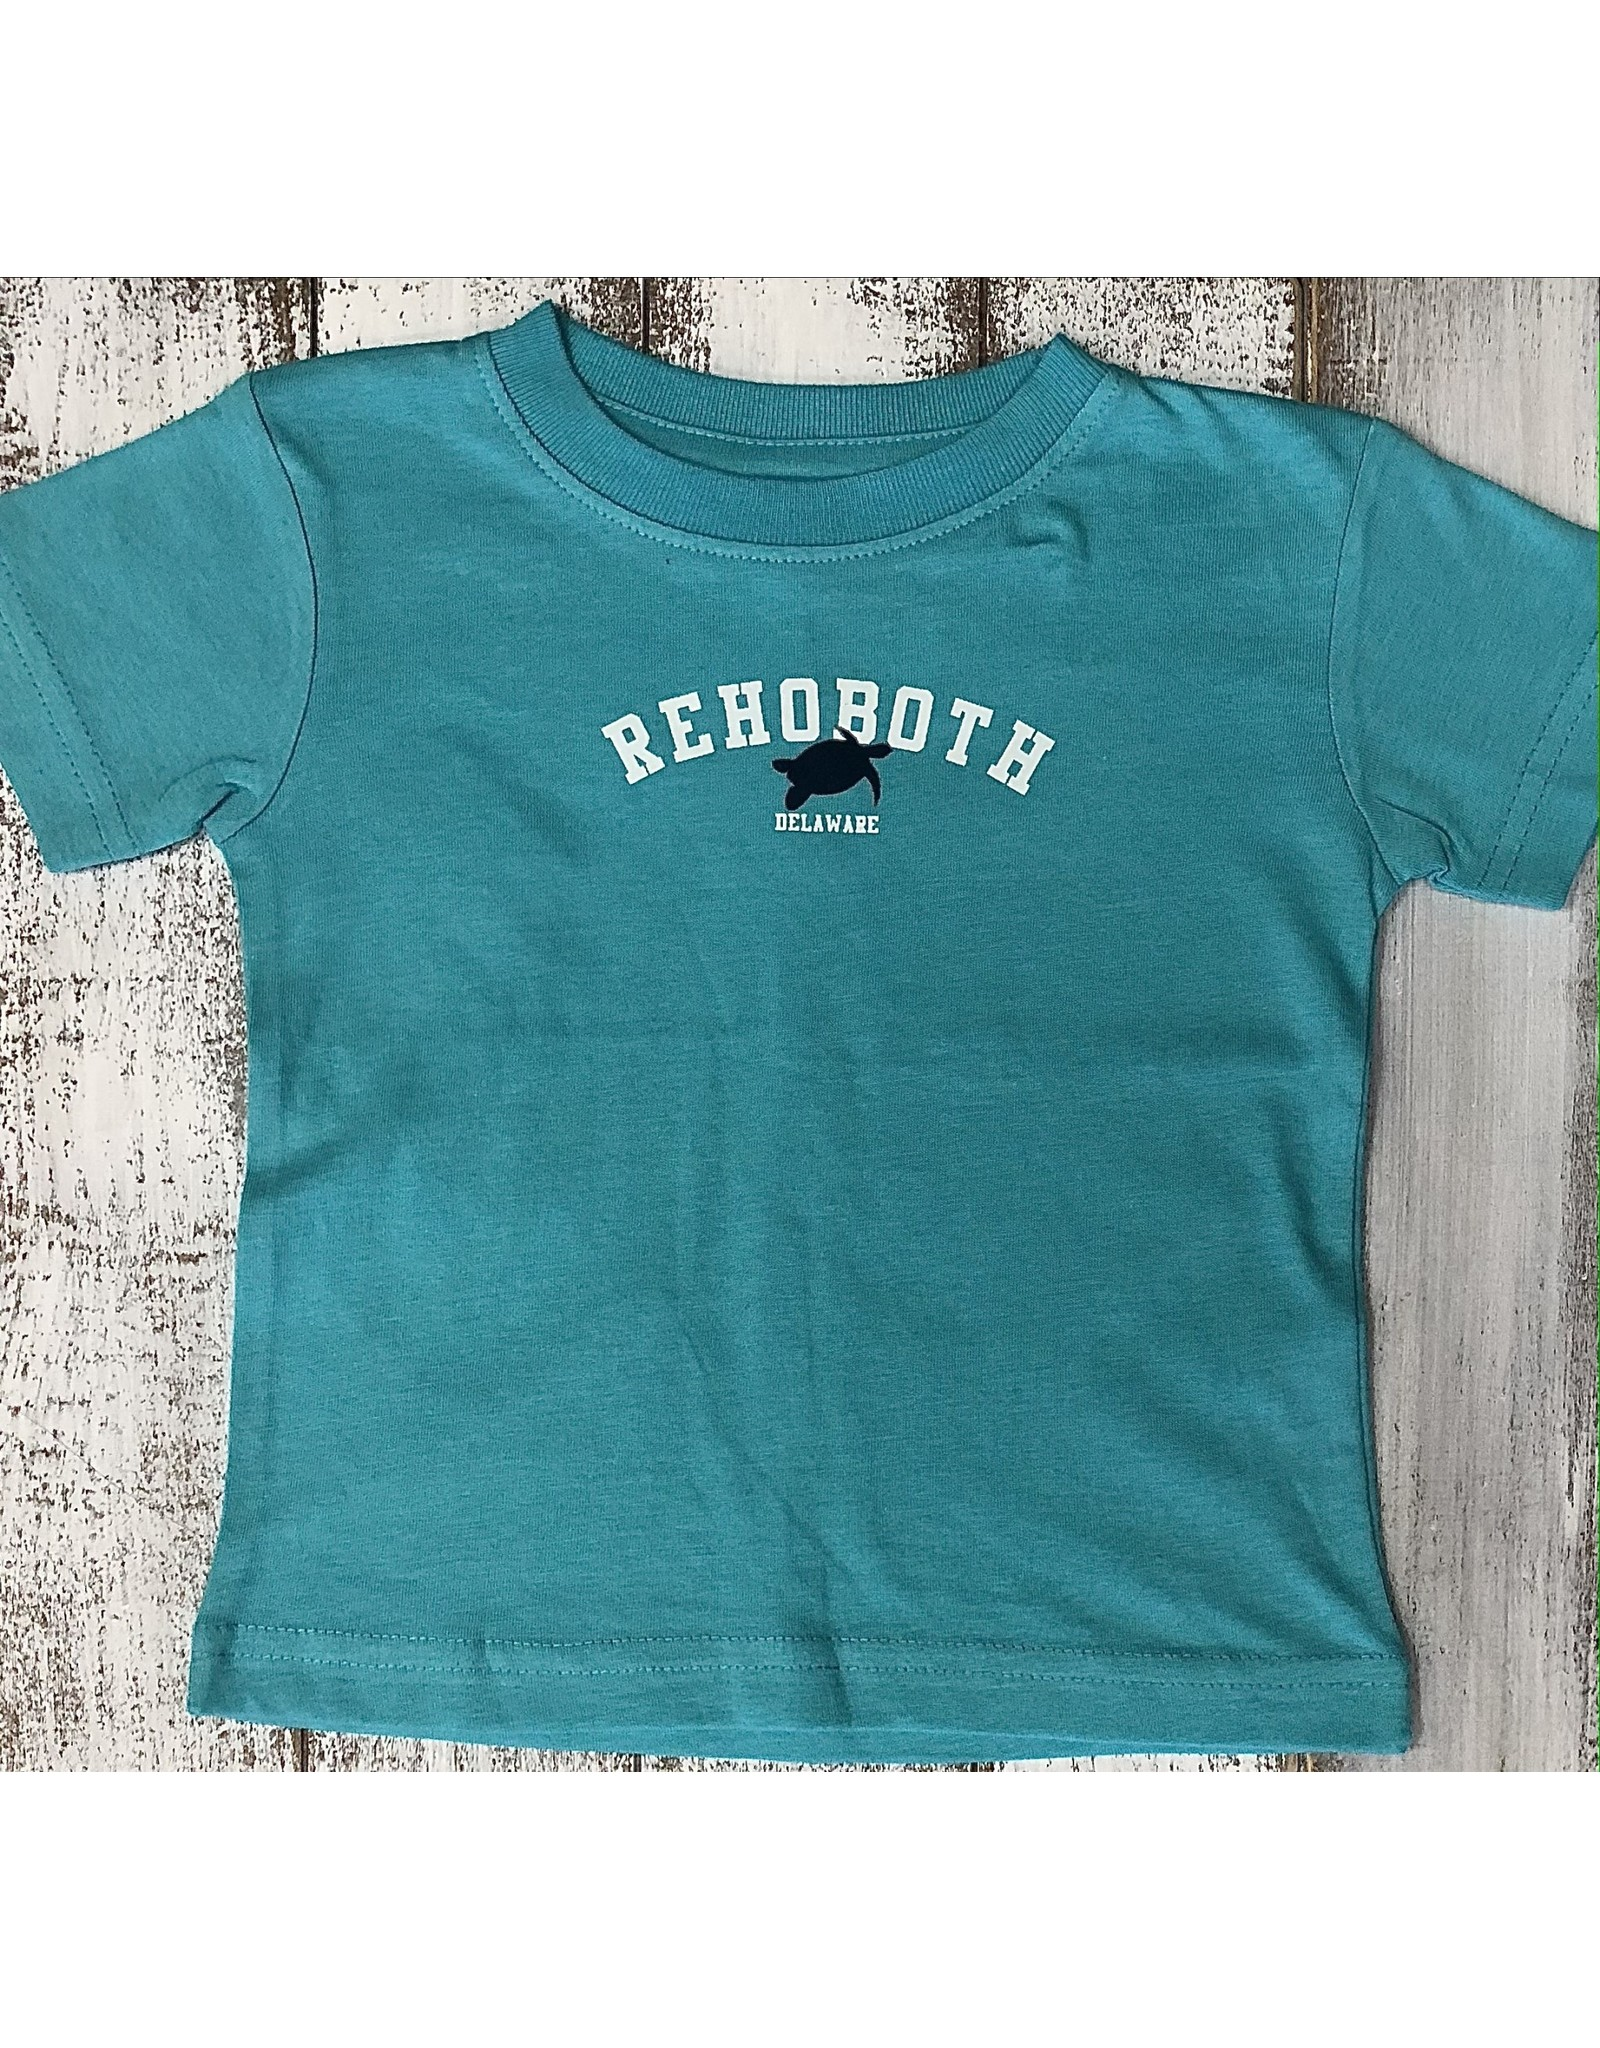 REHOBOTH LIFESTYLE INFANT CLASSIC TURTLE SS TEE